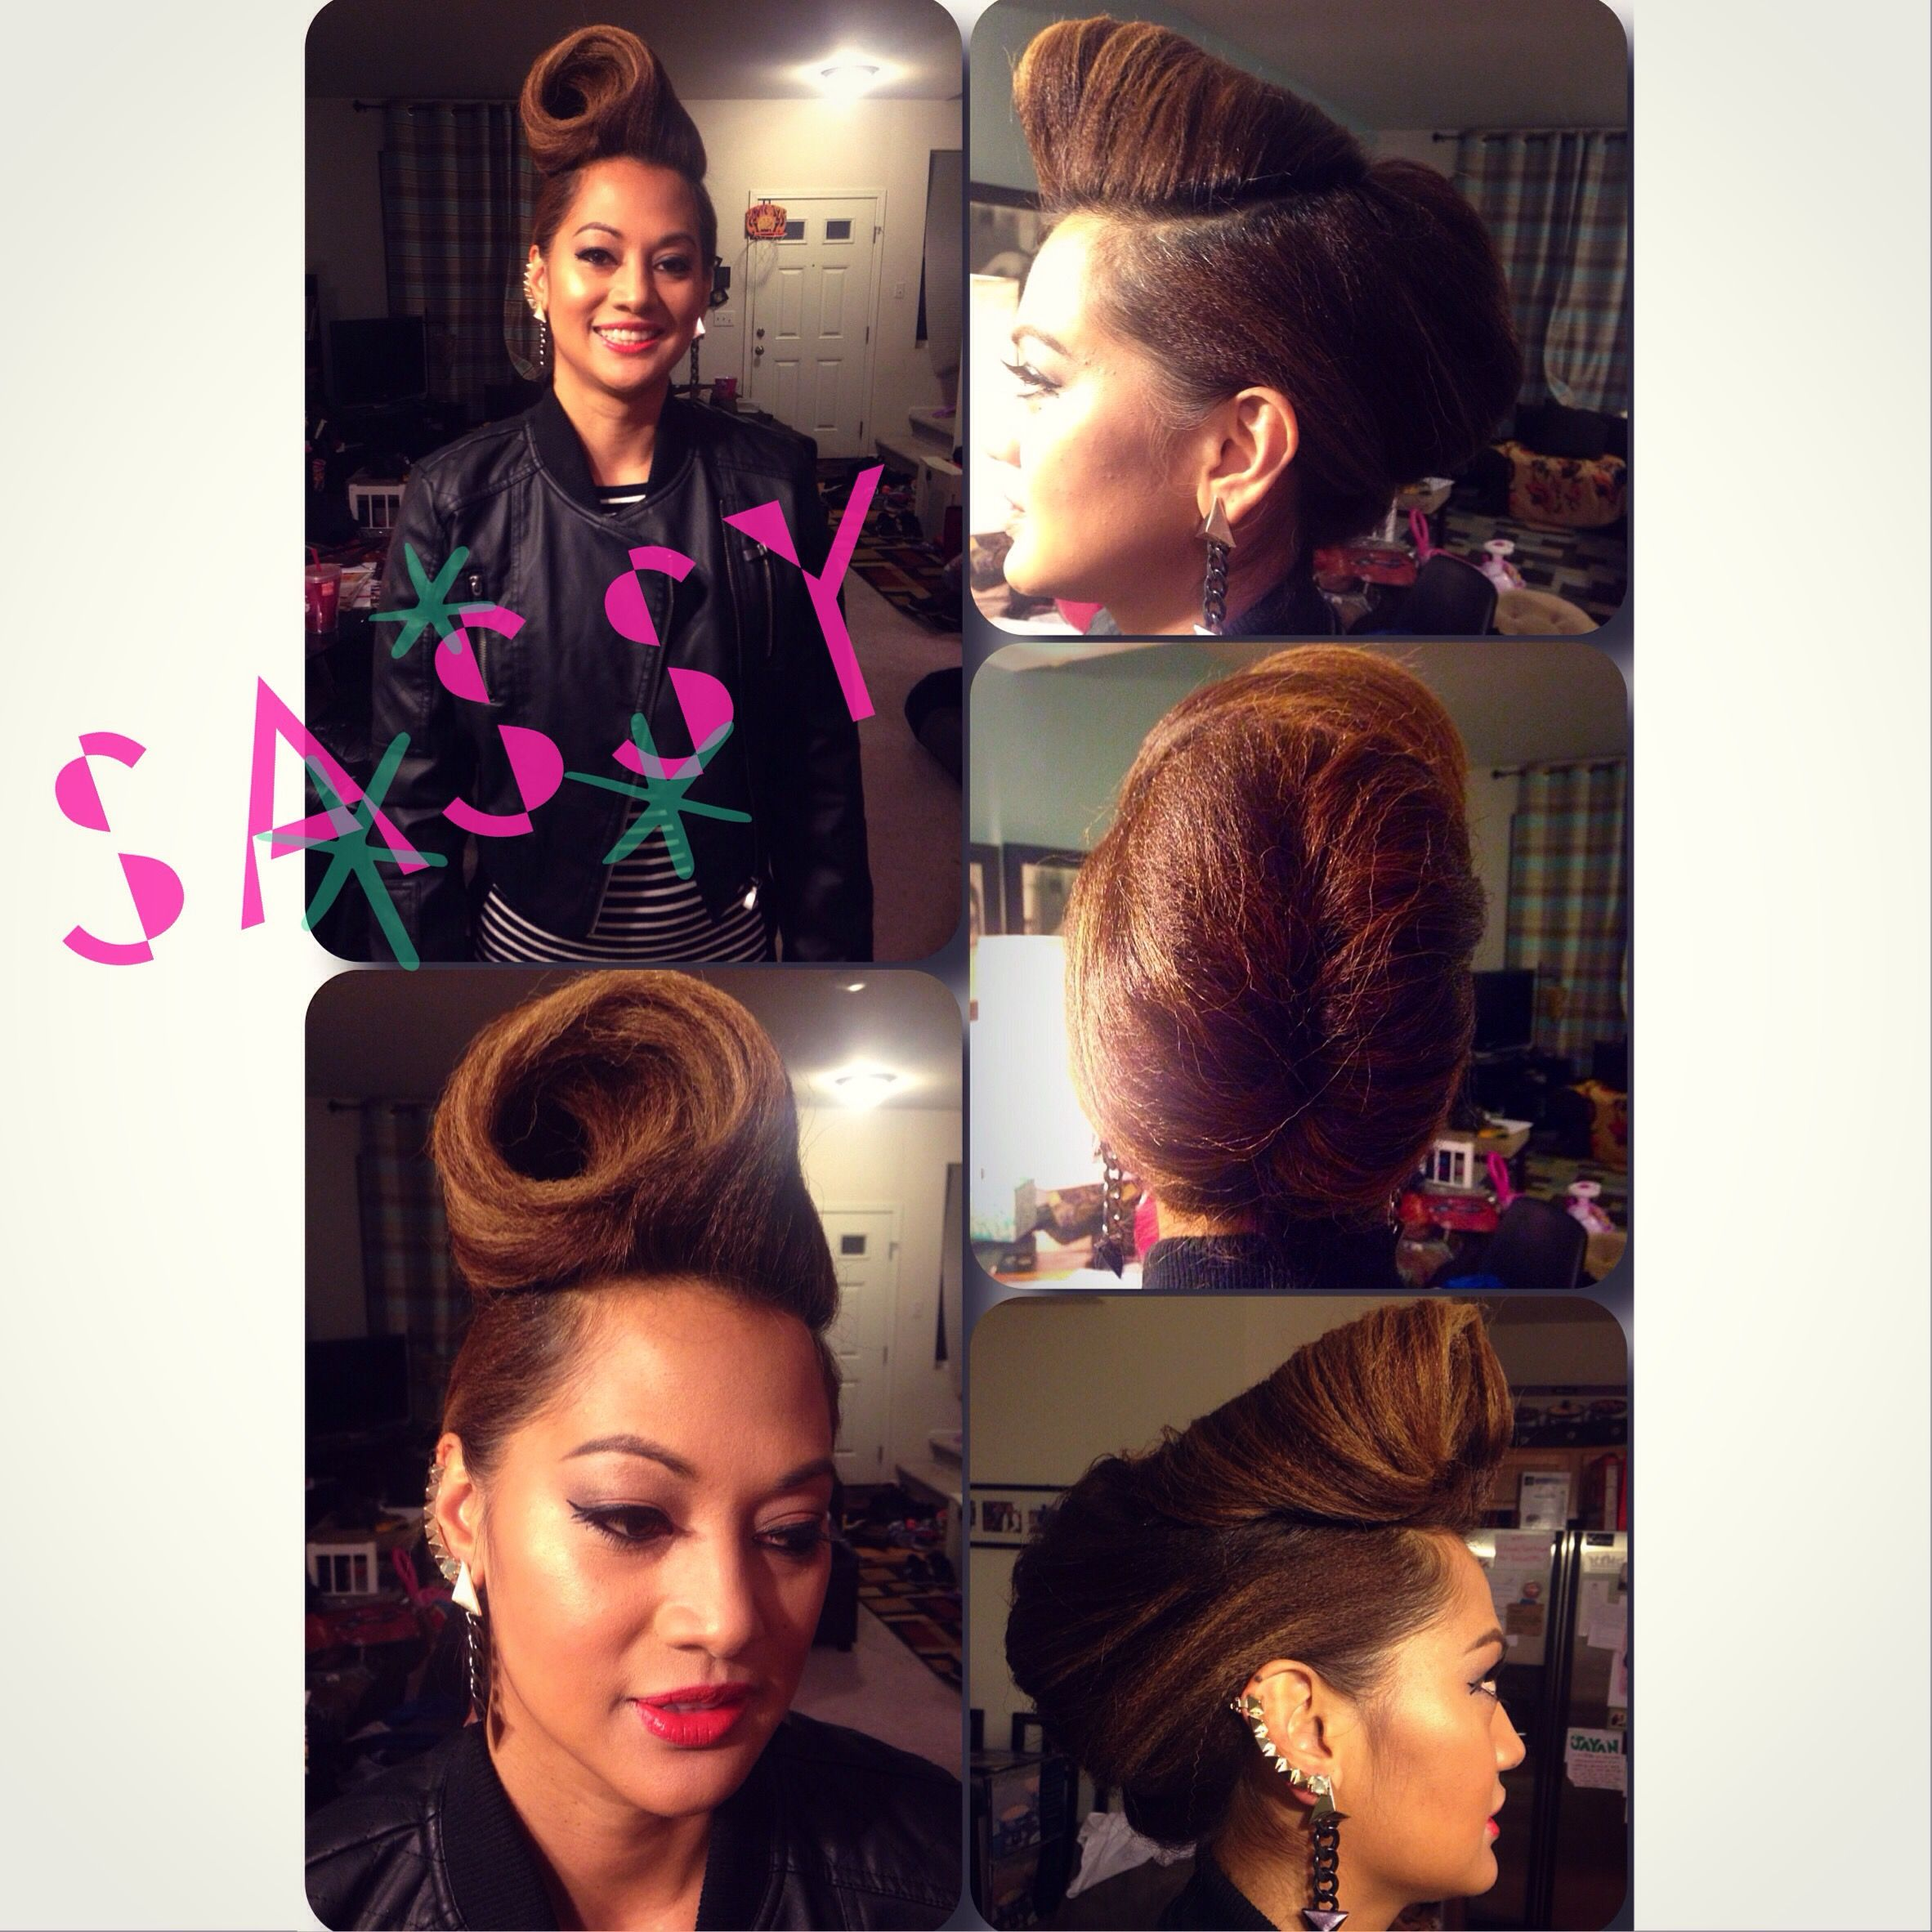 Halloween Hair & Makeup   Done by me at Sassy Shears